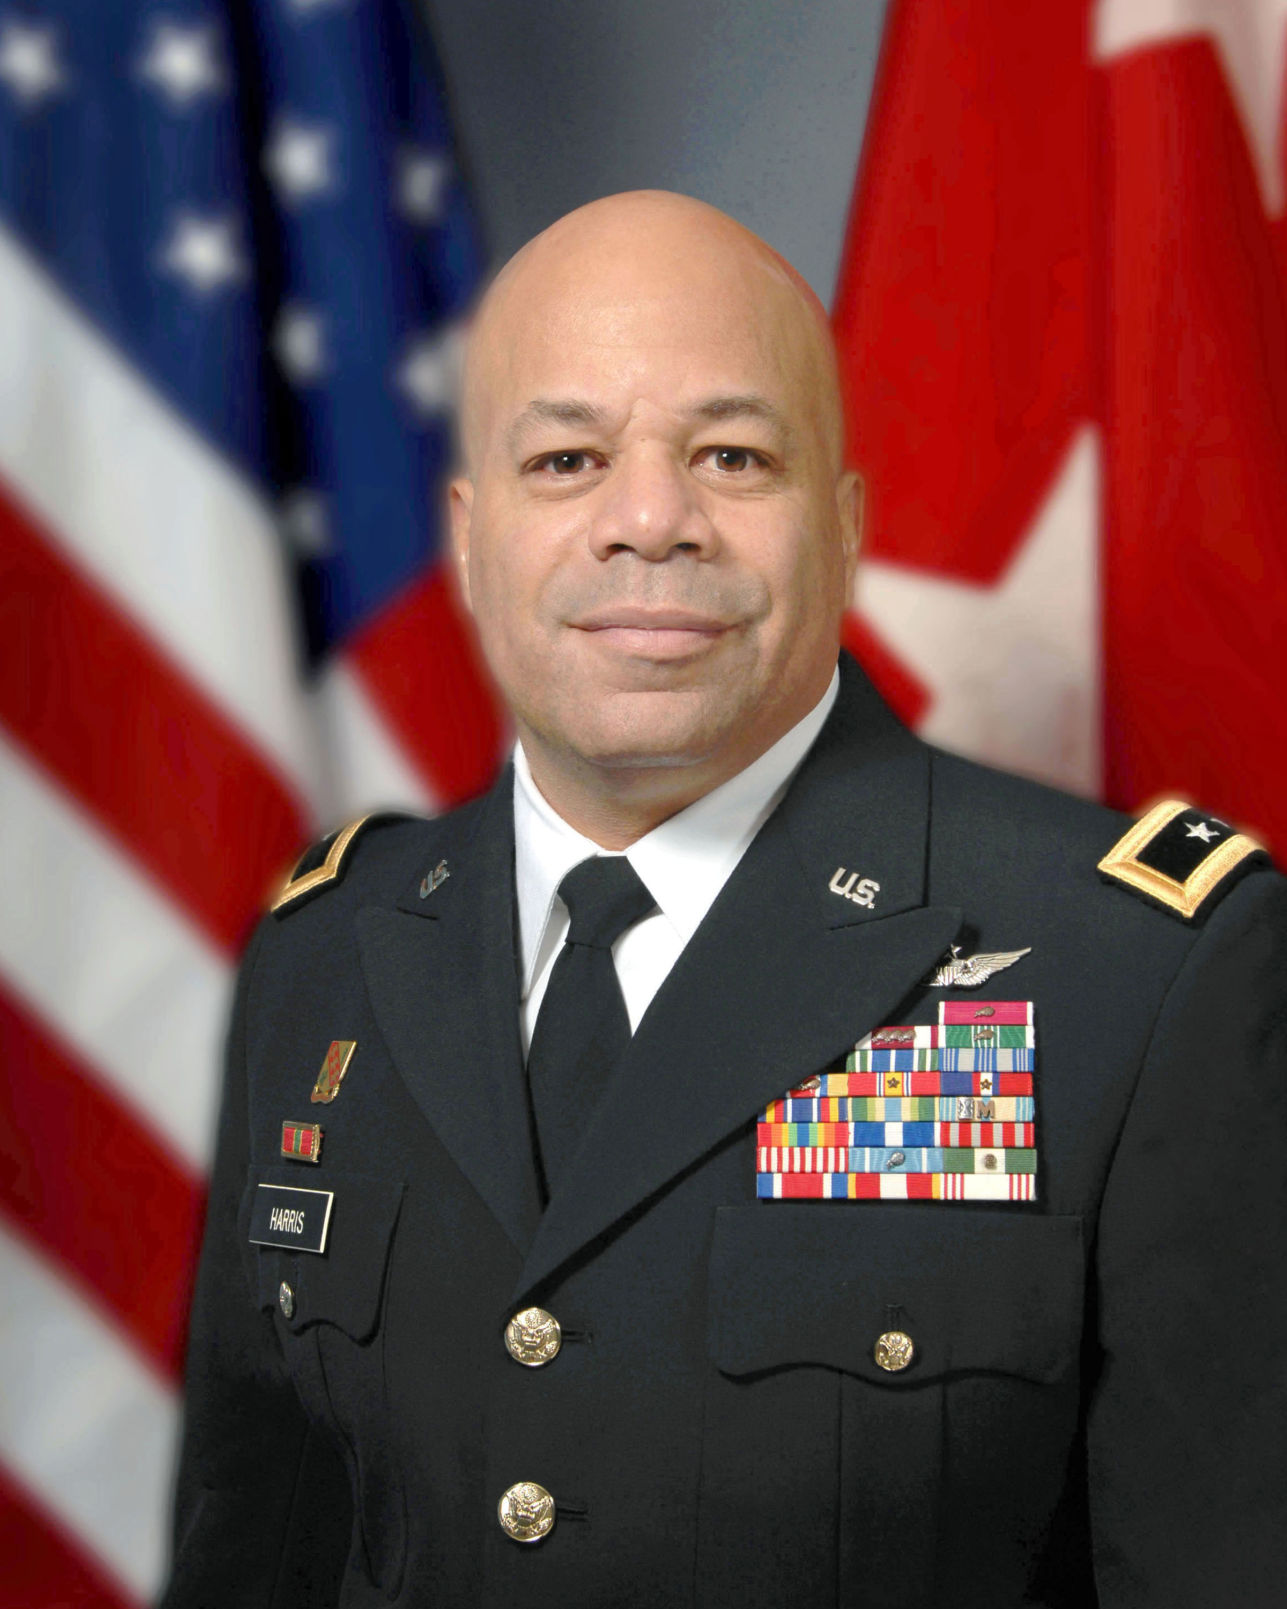 Memorial Day message: Ohio Adjutant General recalls fallen state heroes